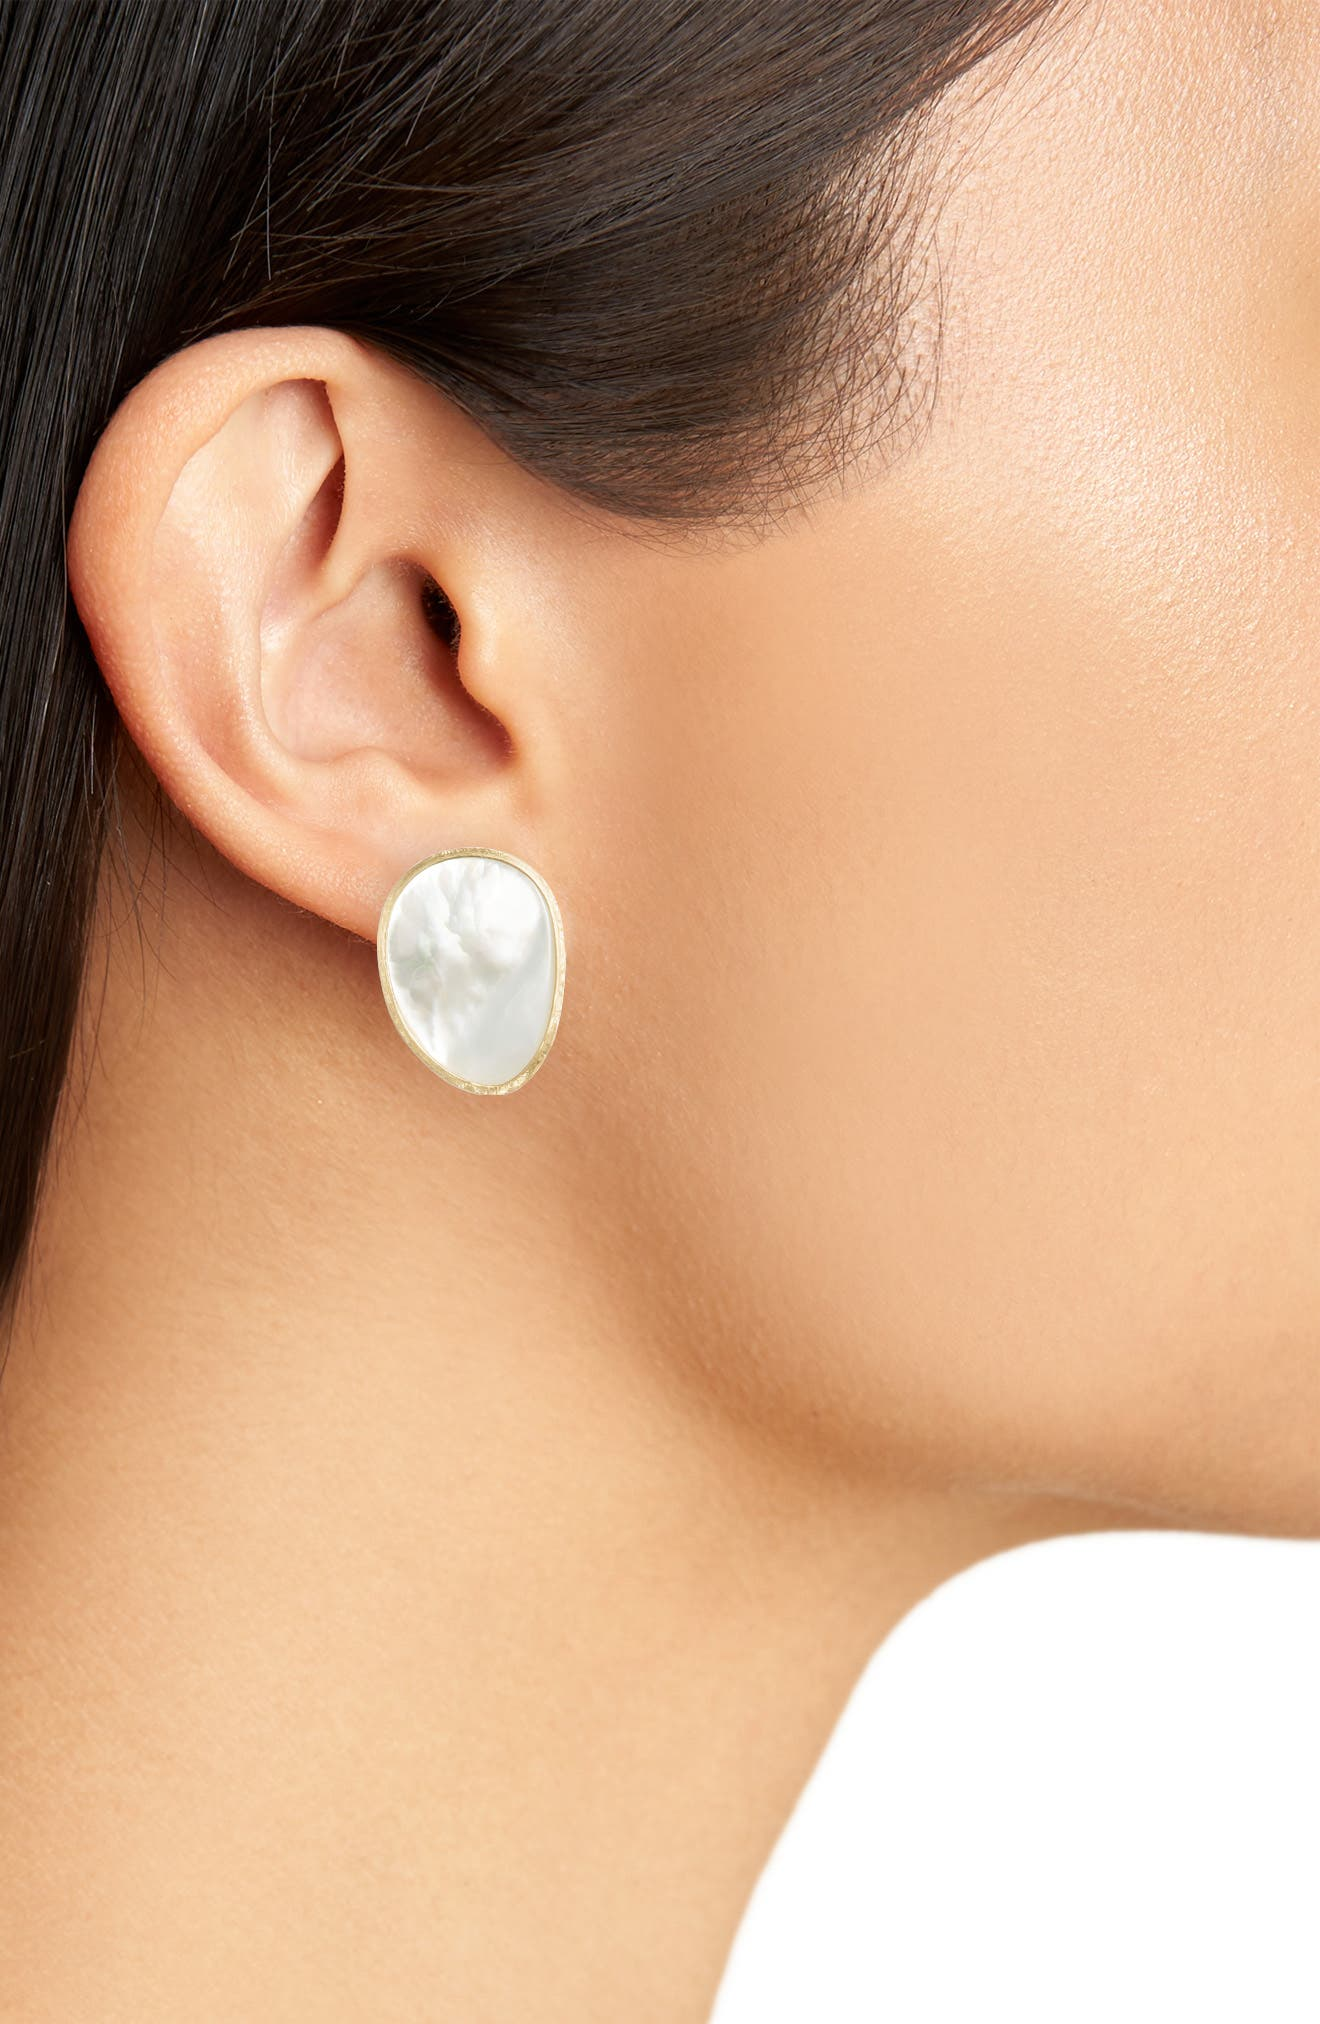 Lunaria Pearl Stud Earrings,                             Alternate thumbnail 2, color,                             White Mother Of Pearl